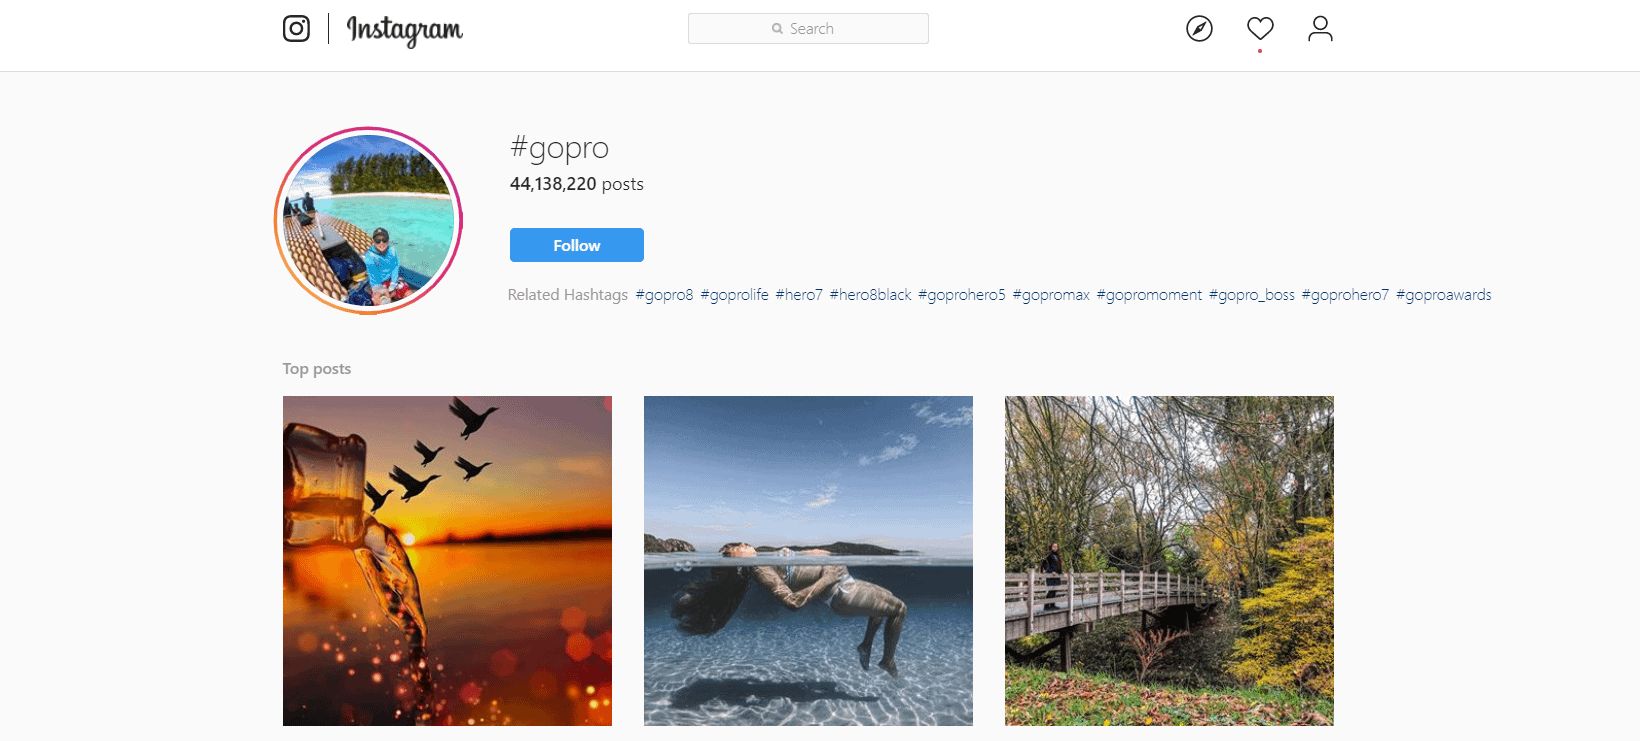 How to Promote Your Instagram Account - GoPro